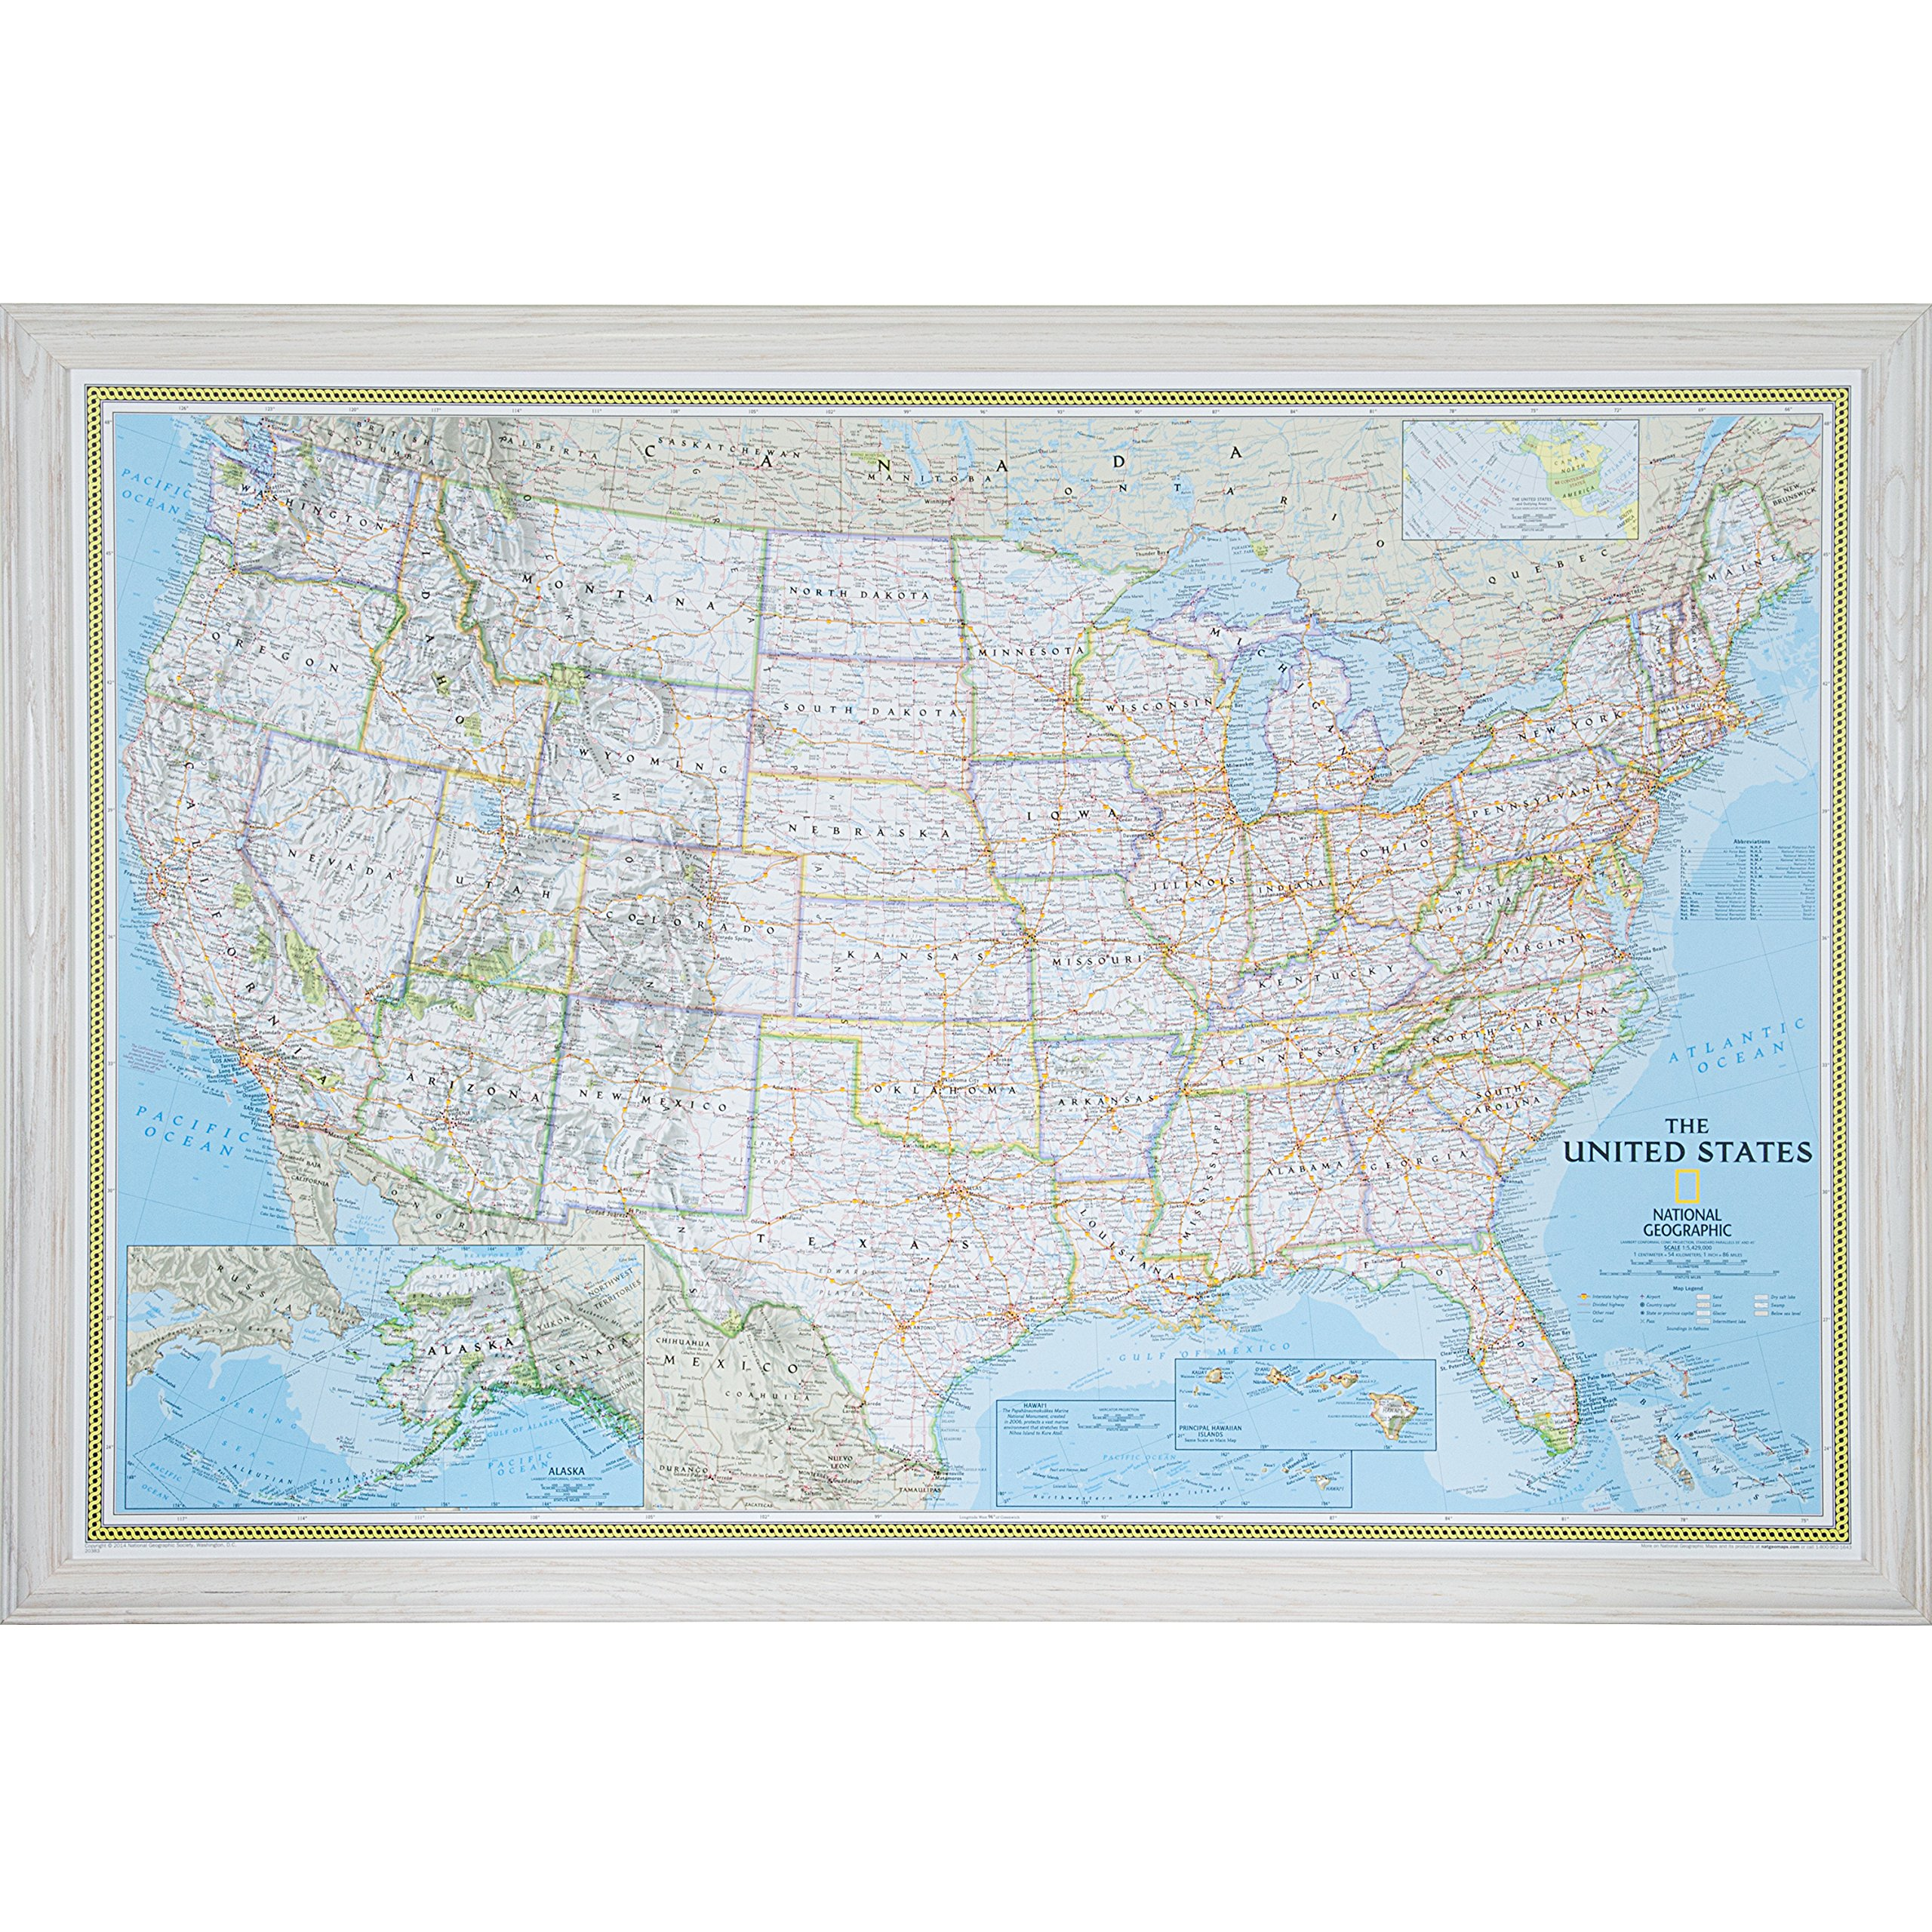 Craig Frames Wayfarer, Classic United States Push Pin Travel Map, Traditional Whitewash Solid Wood Frame and Pins, 24 by 36-Inch